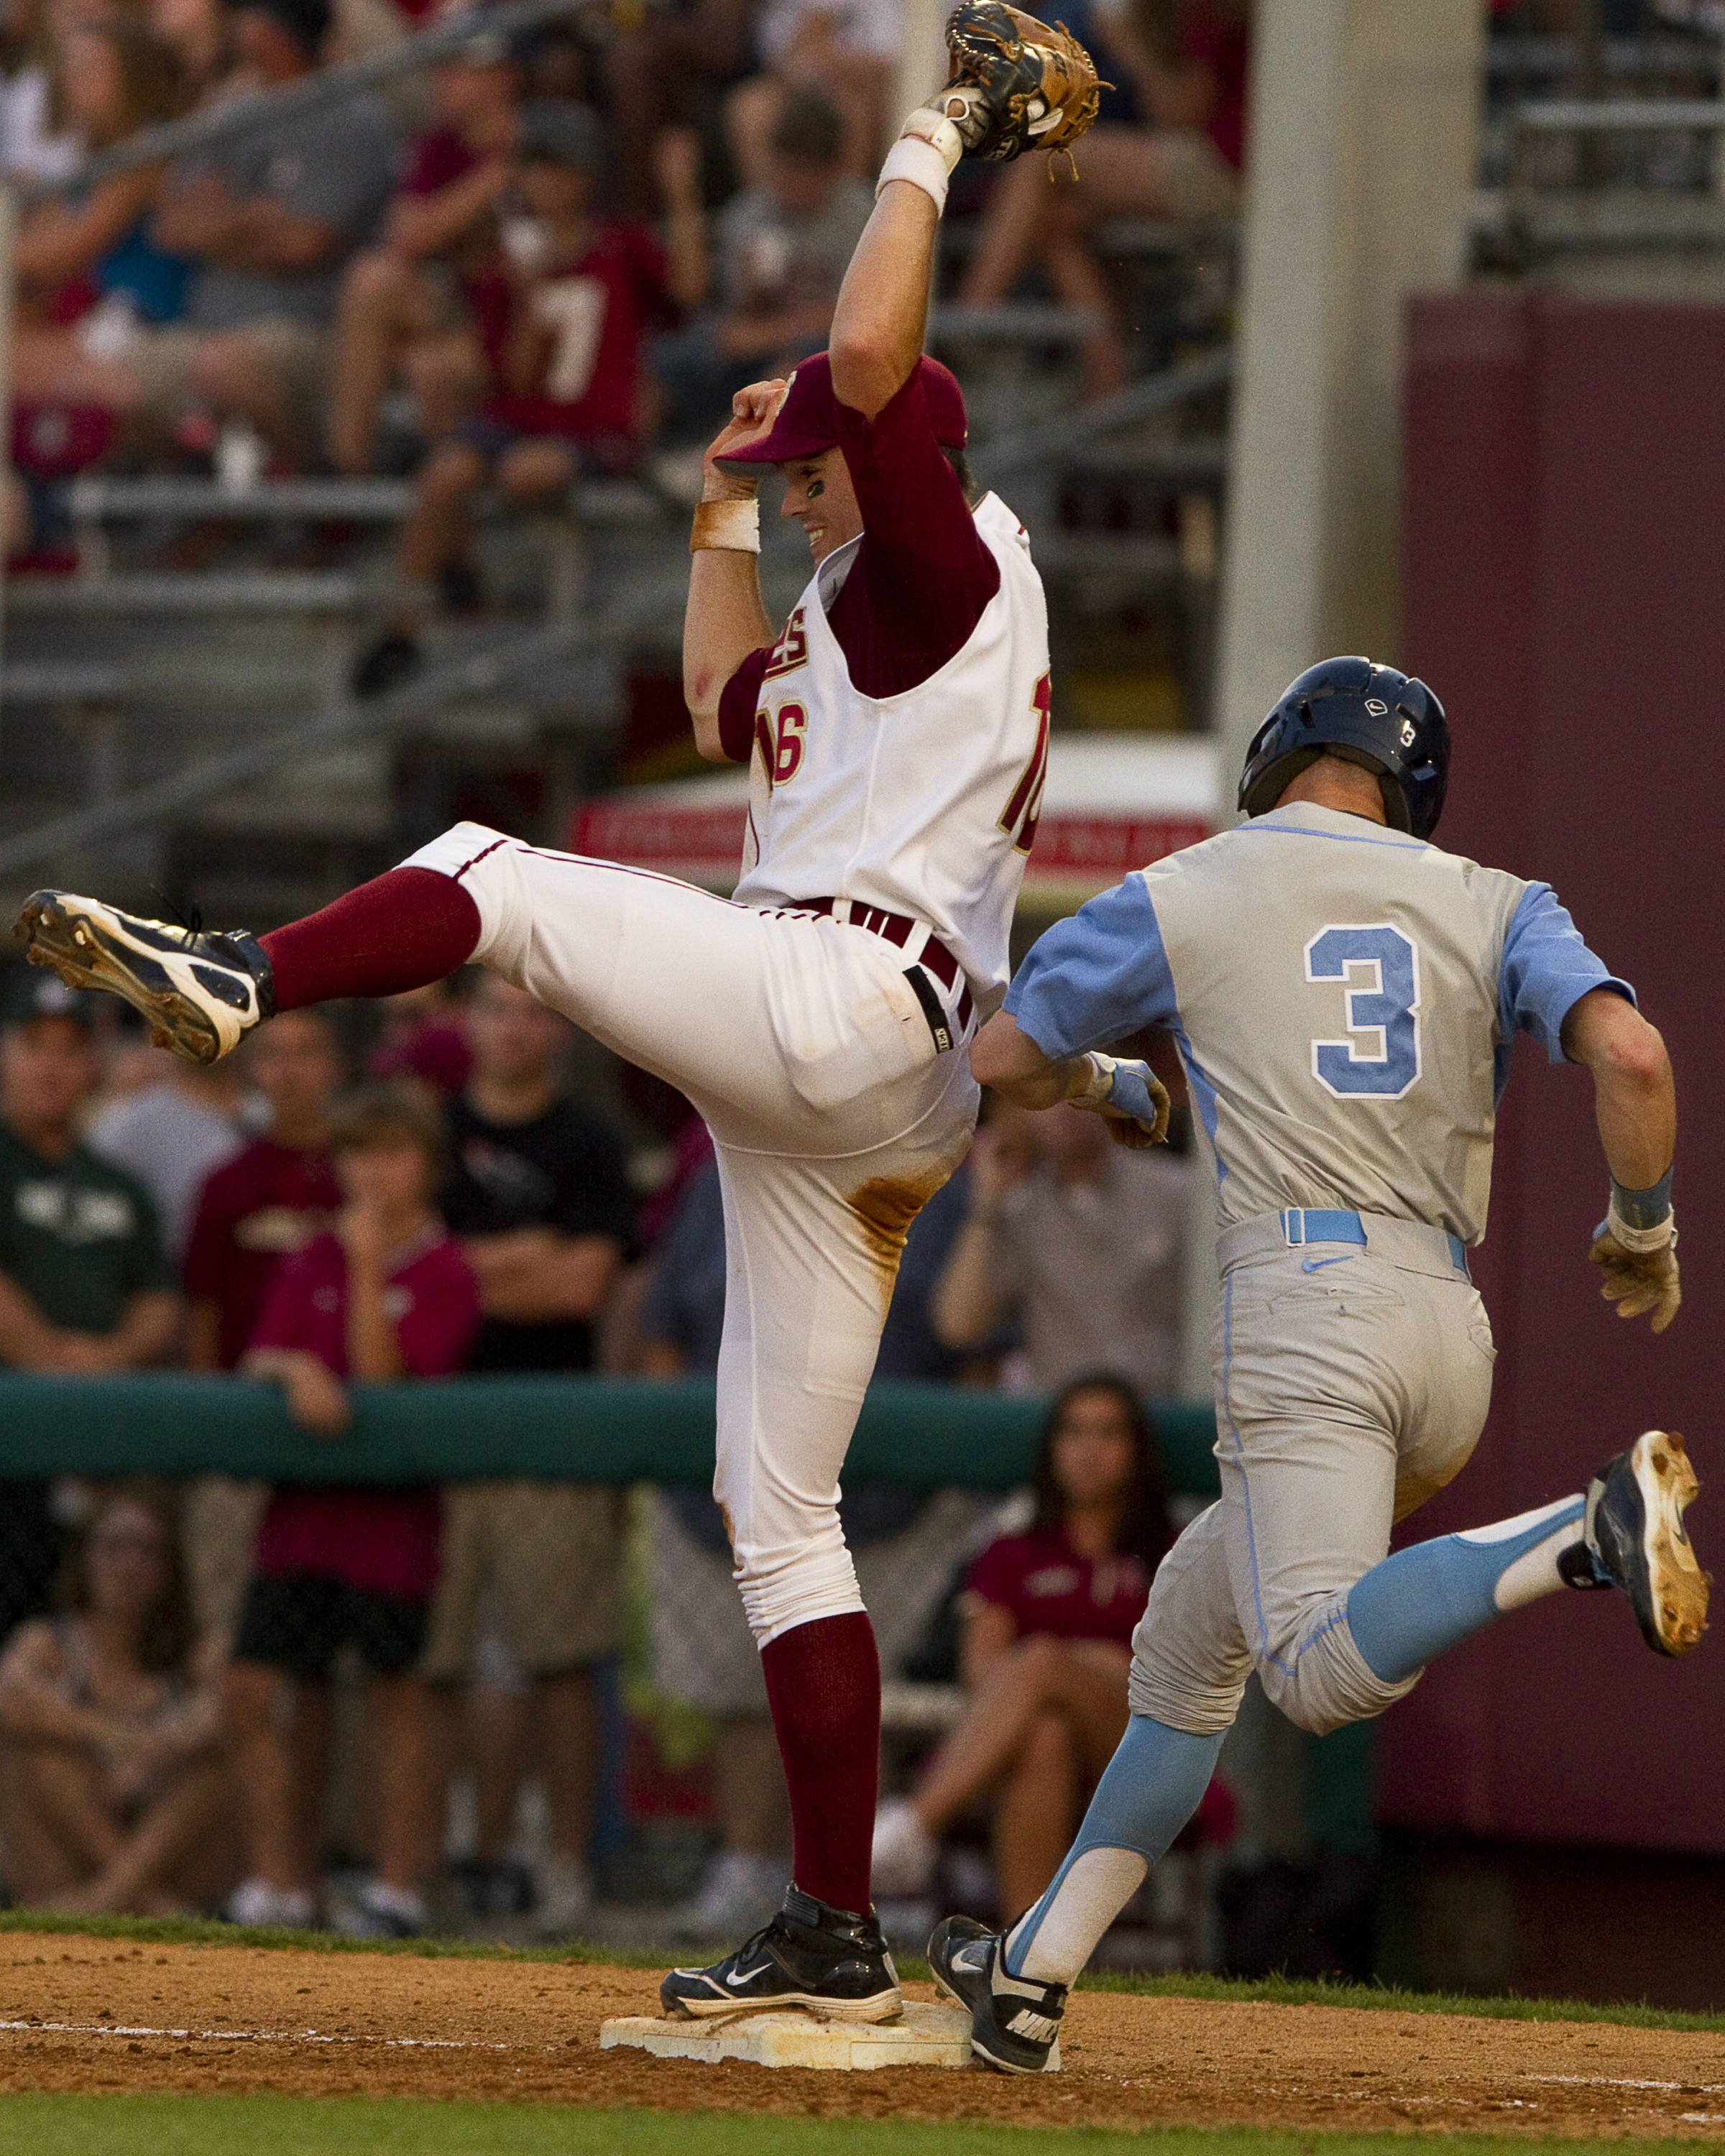 Jayce Boyd (16) makes a leaping catch to force out the runner at first.